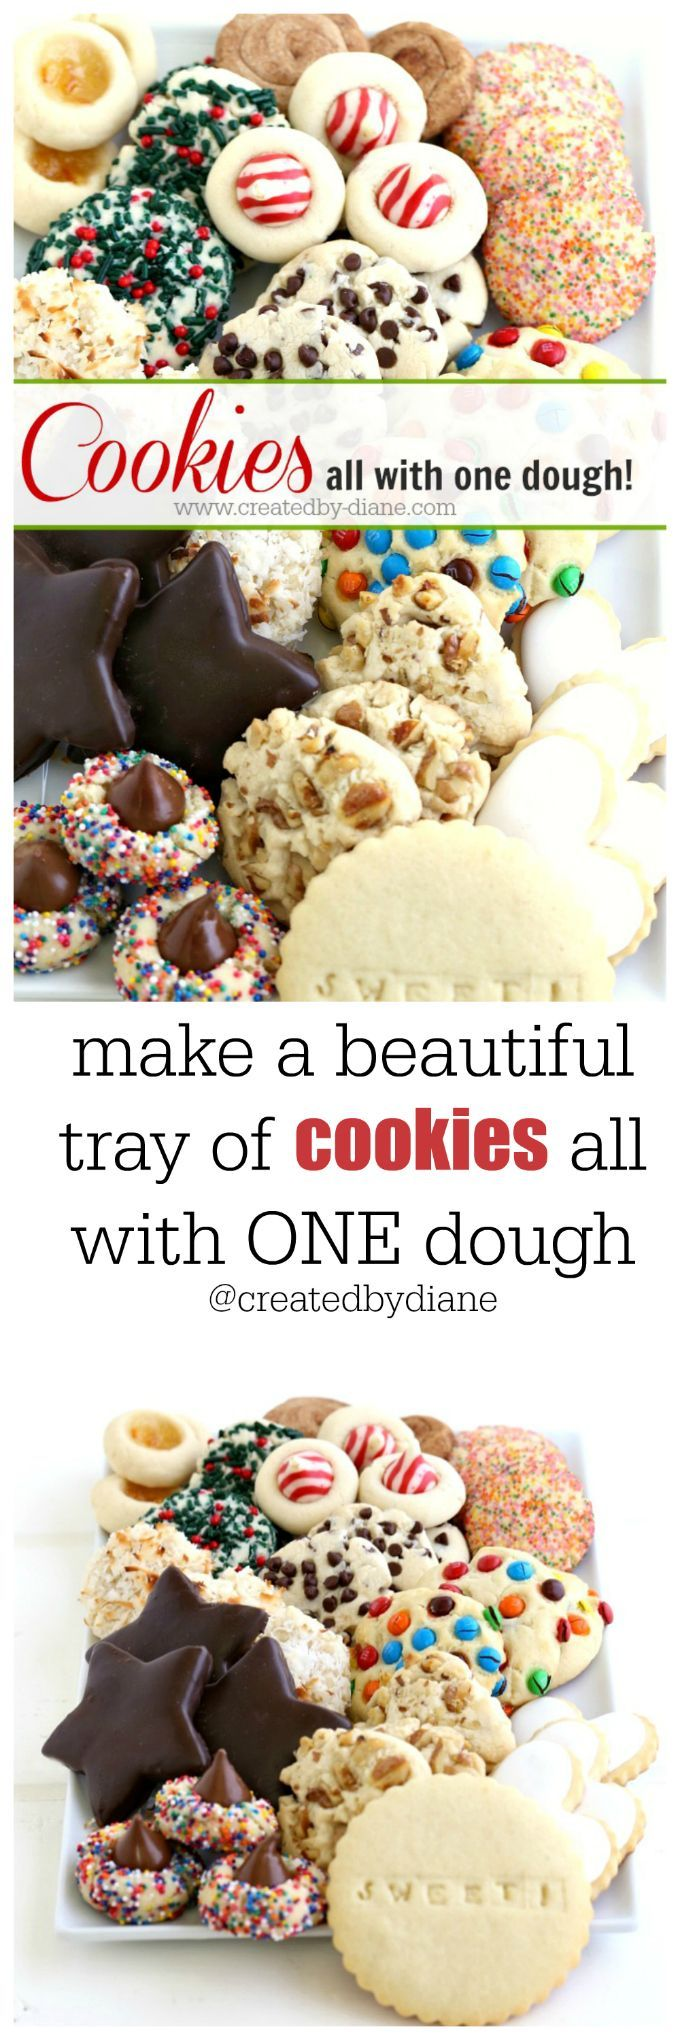 one dough cookie tray from @createdbydiane